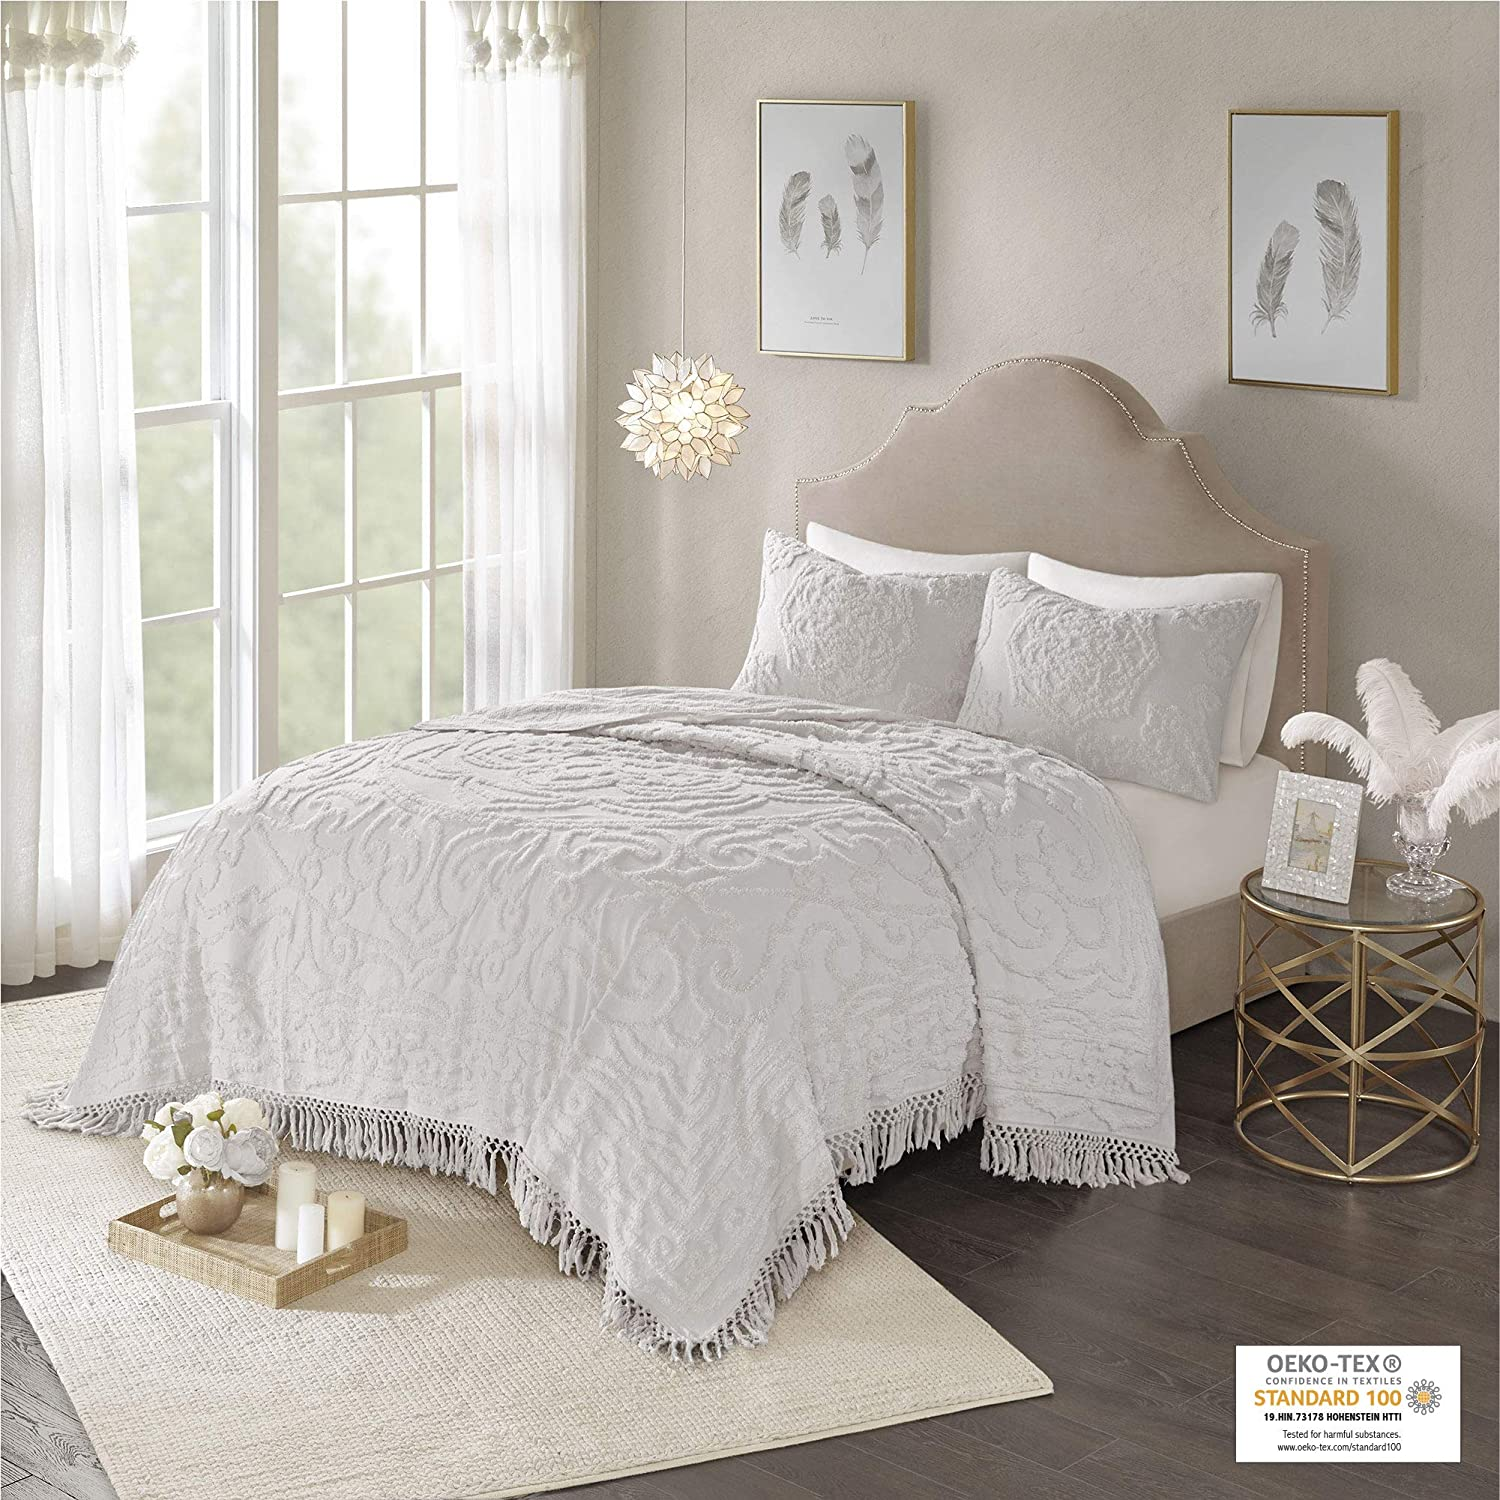 Madison Park Laetitia Chenille Tufted 100% Cotton Quilt Shabby Chic Cozy All Season Bedspread Bed Set